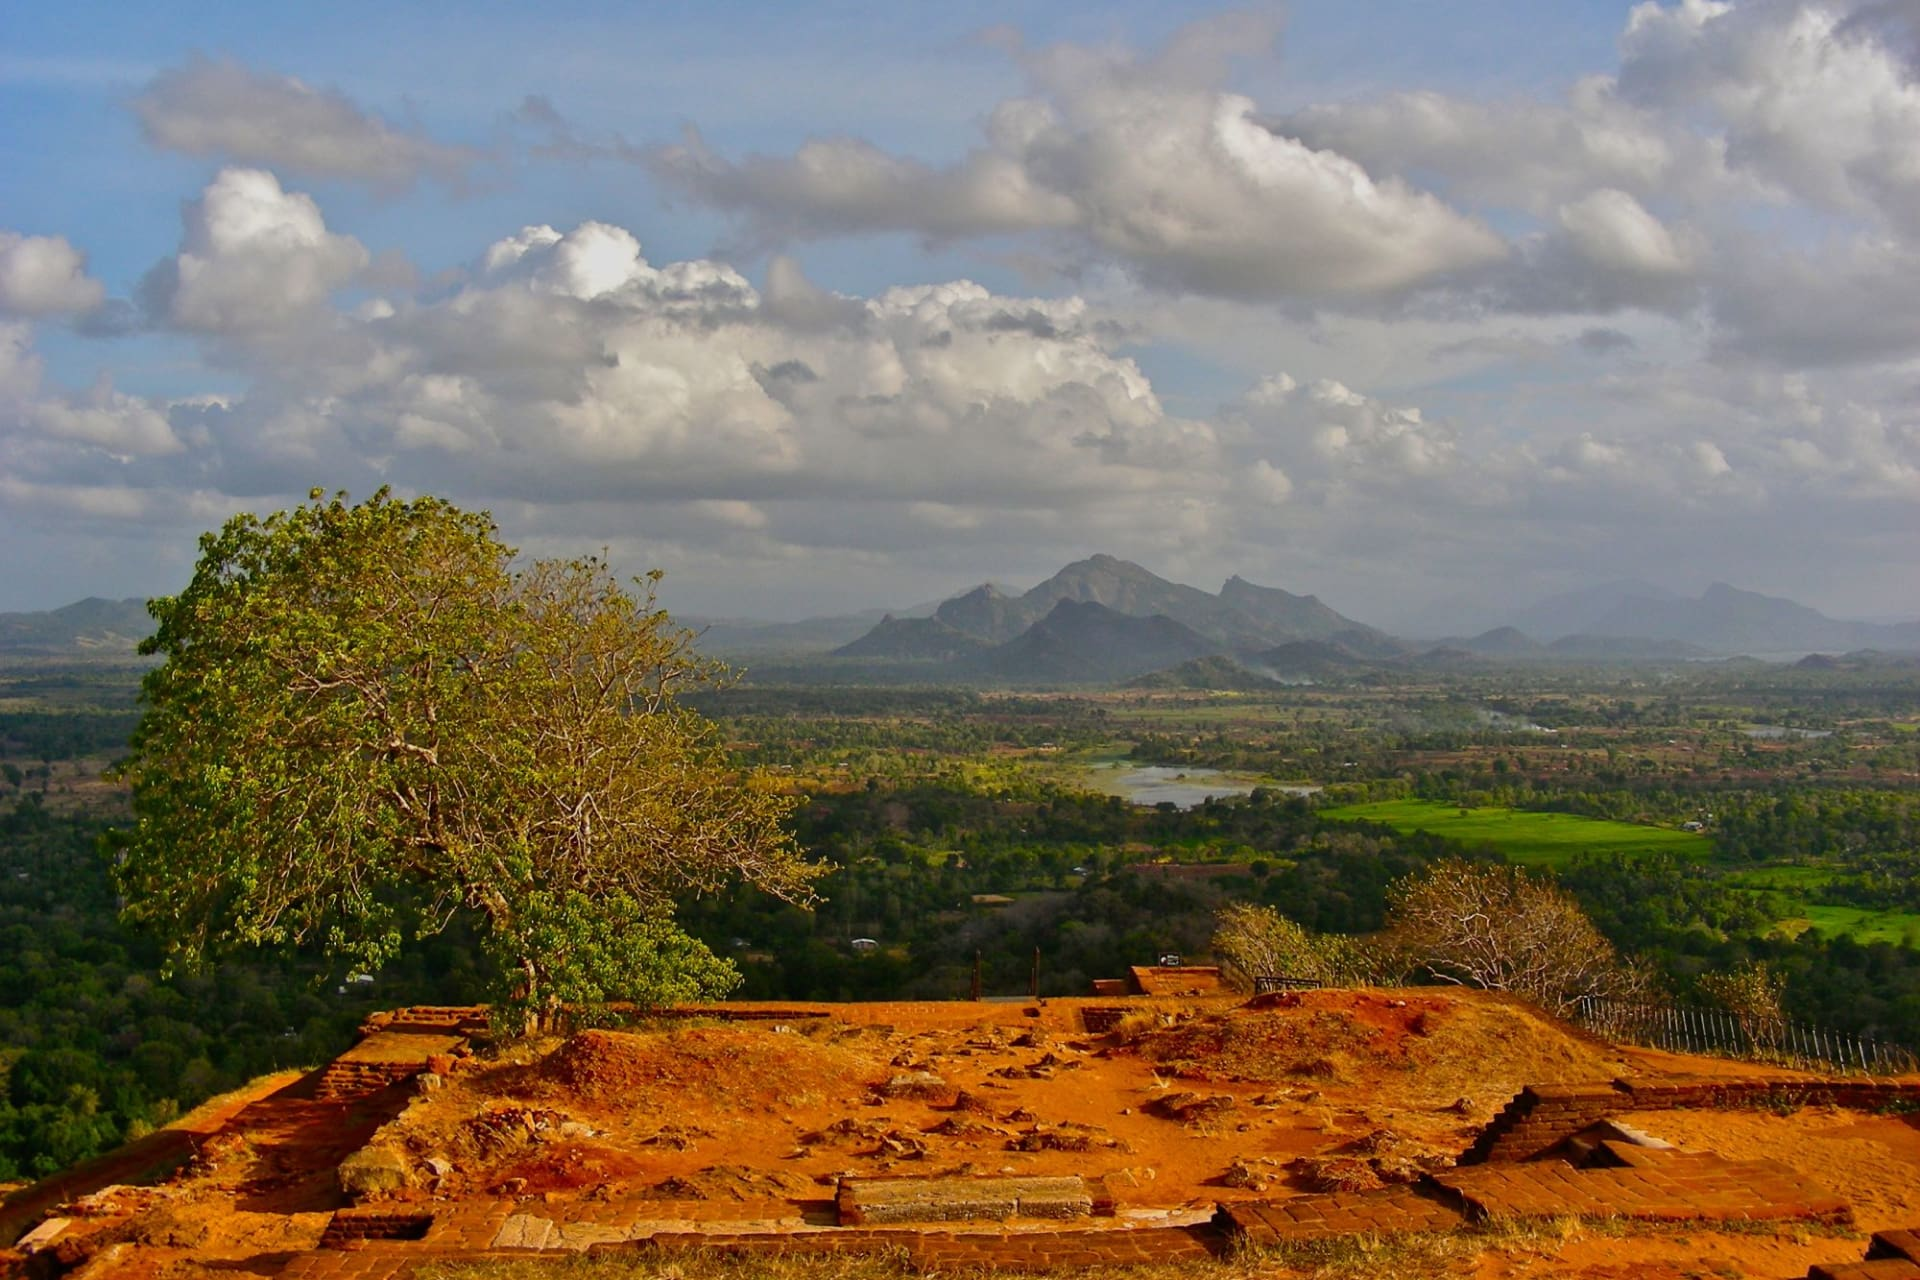 Sigiriya: View from the top